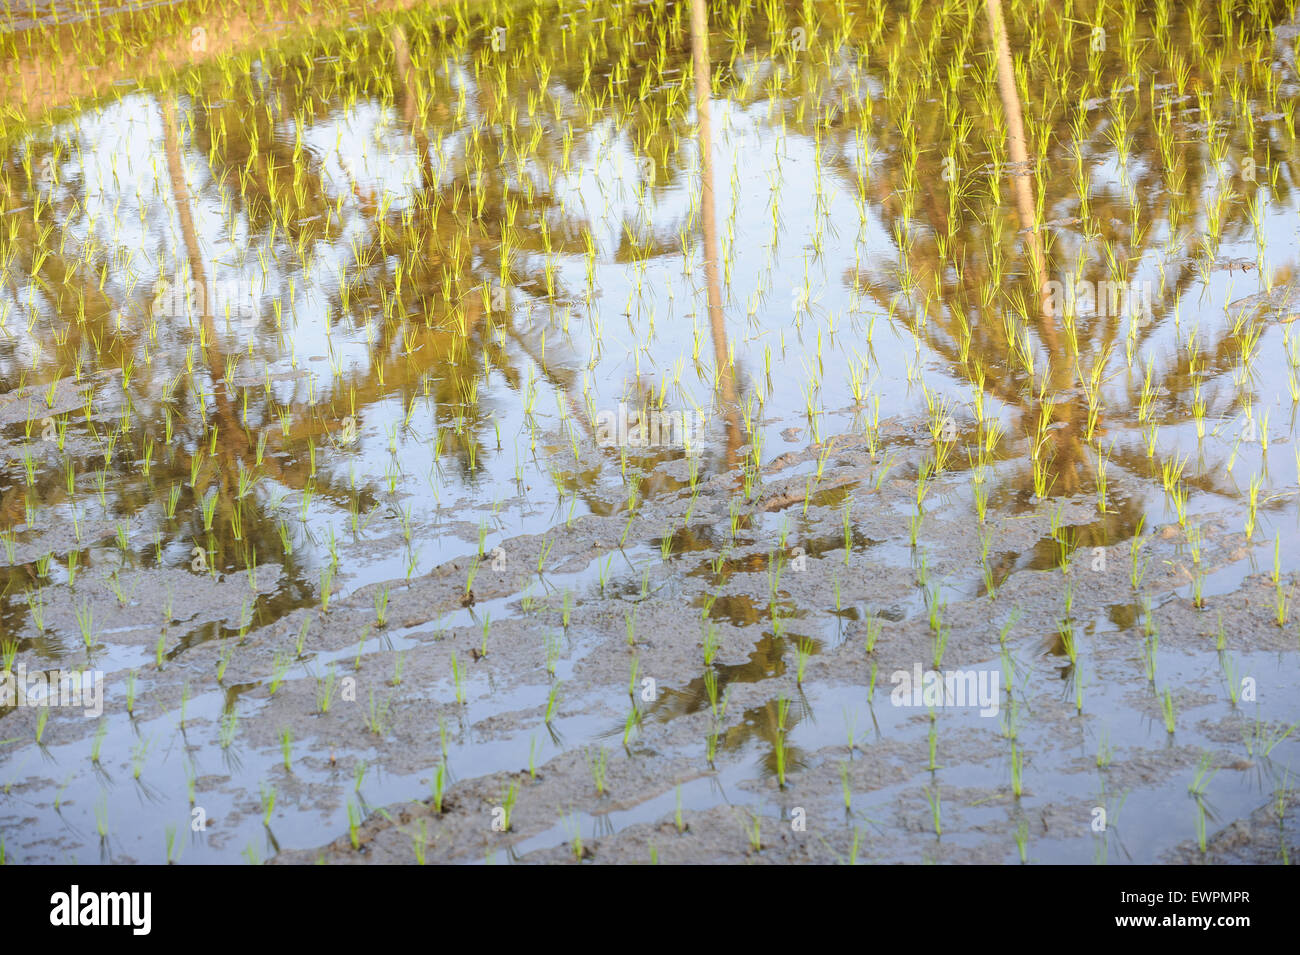 Coconut palm trees reflected in a padi field, newly planted with rice plants, Ubud, Bali, Indonesia. - Stock Image